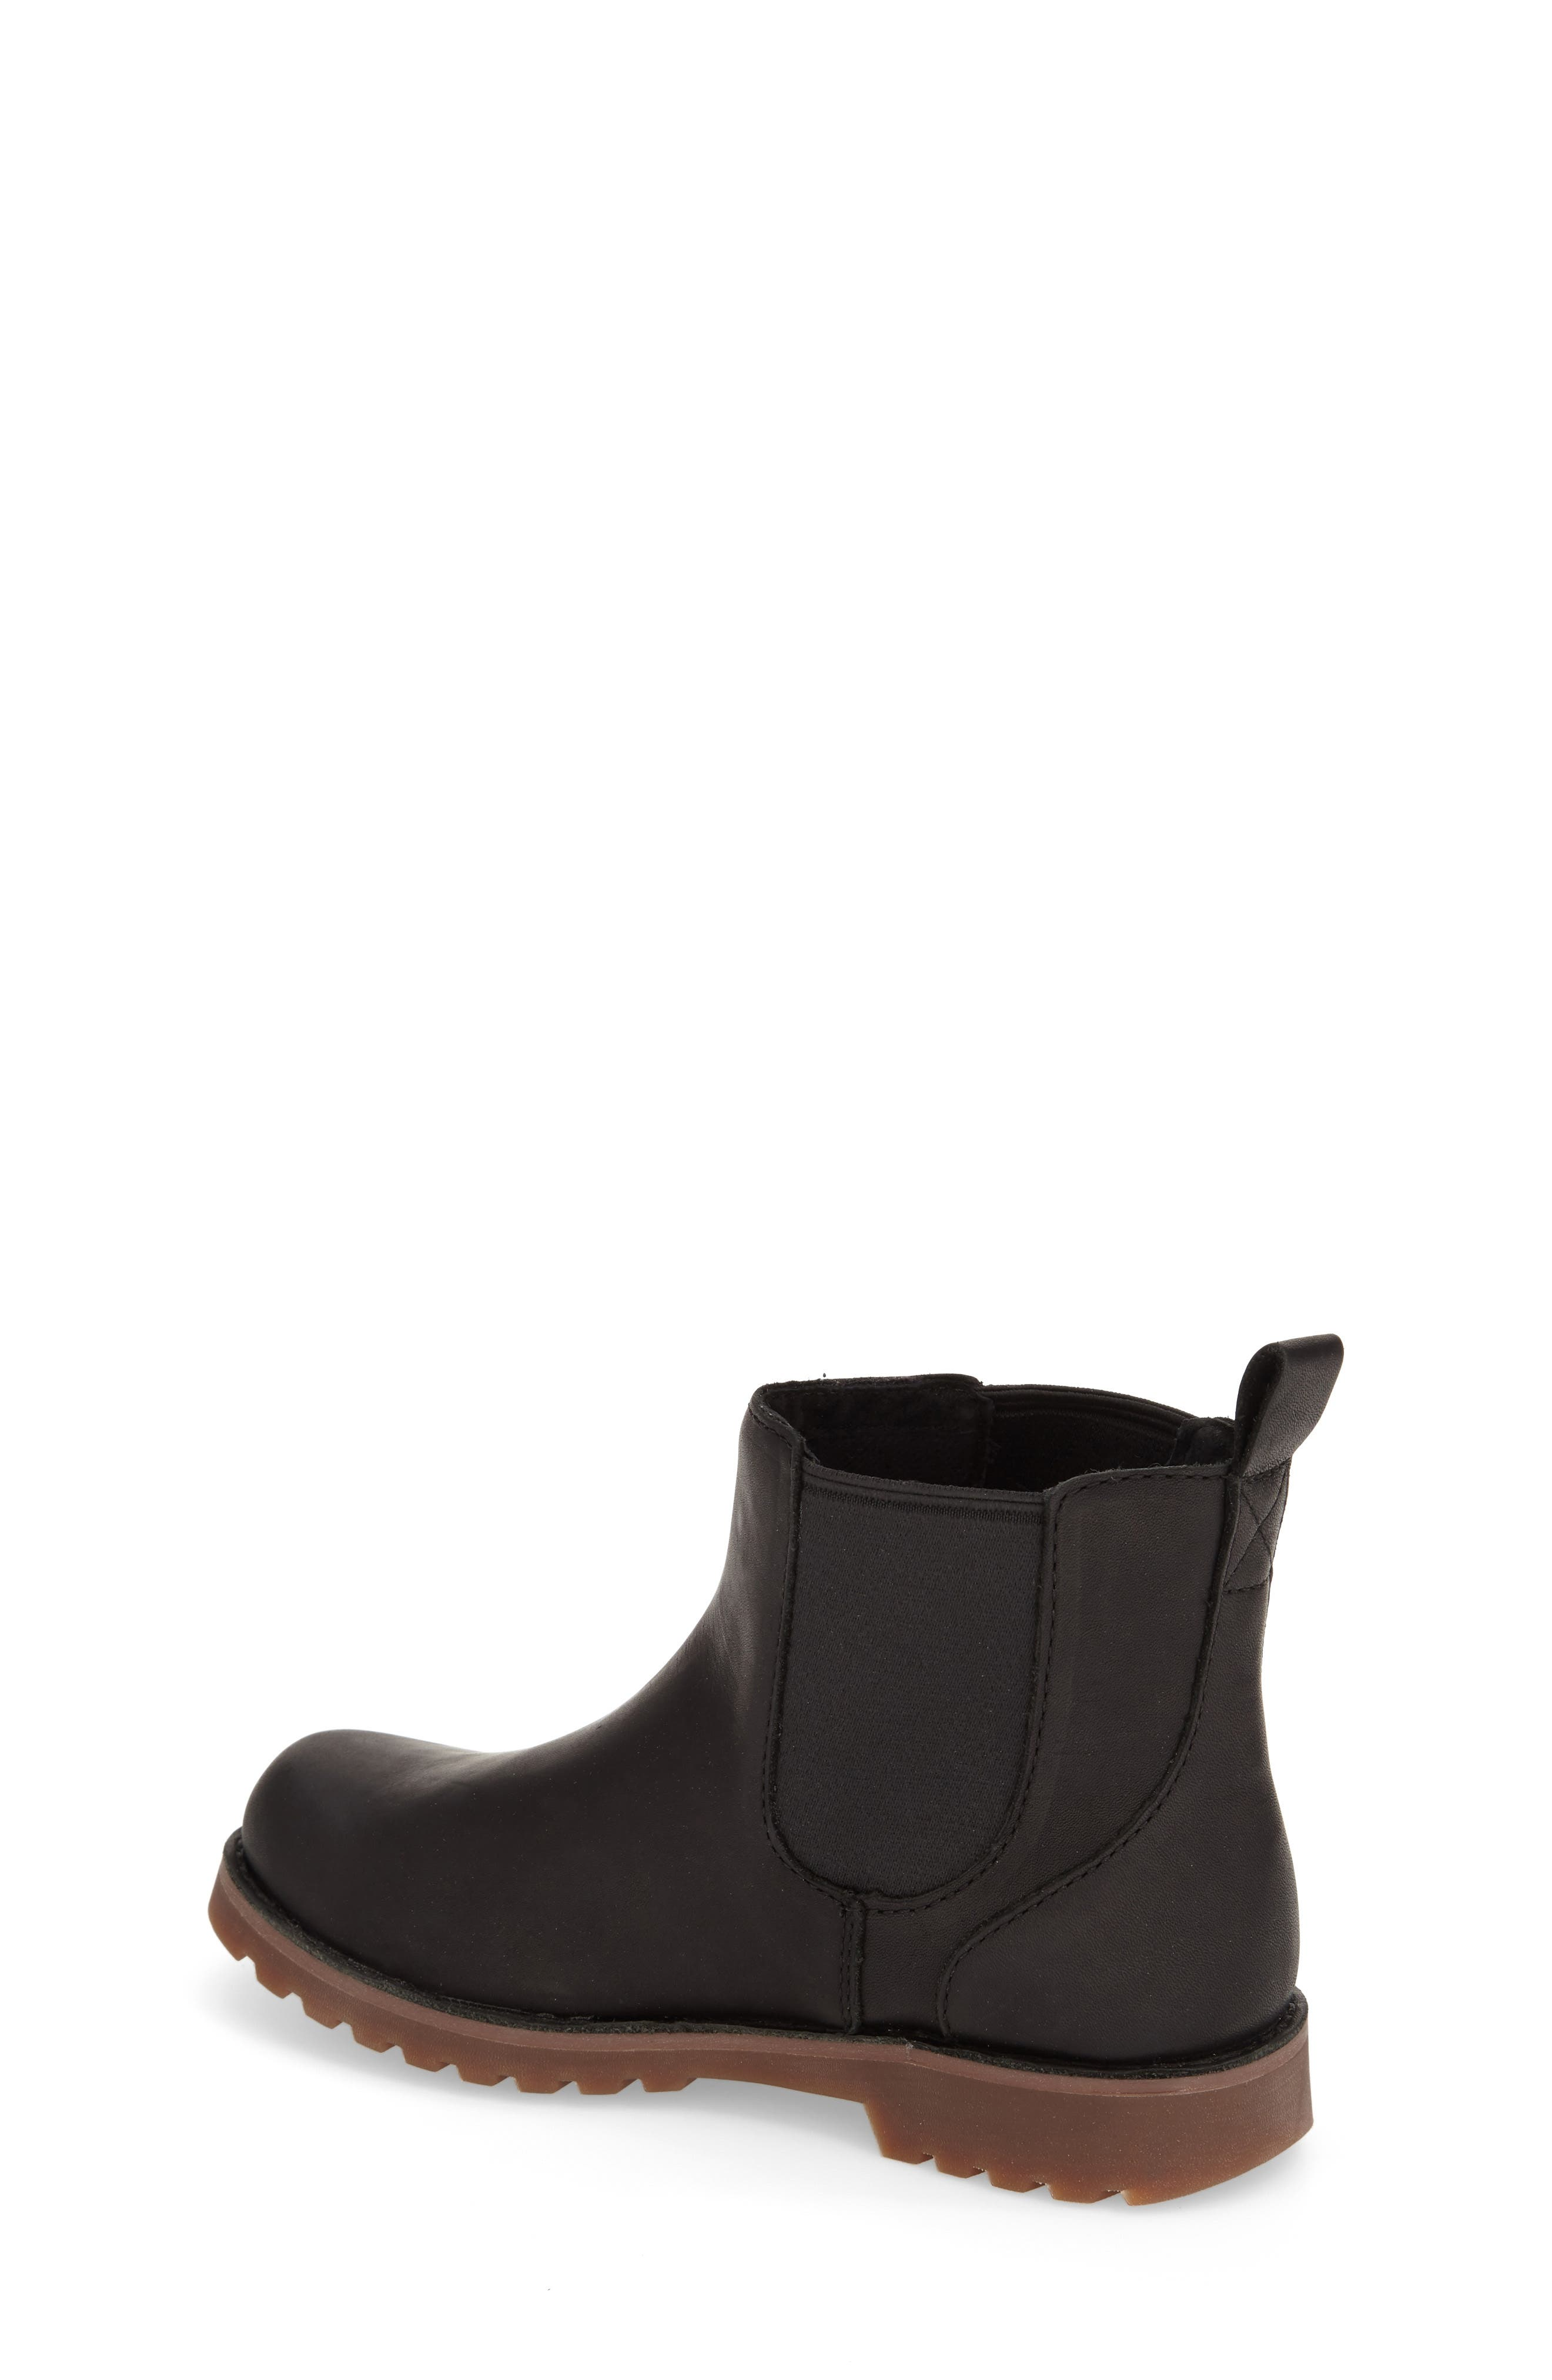 UGG<SUP>®</SUP>, Callum Water Resistant Chelsea Boot, Main thumbnail 1, color, BLACK/ BLACK